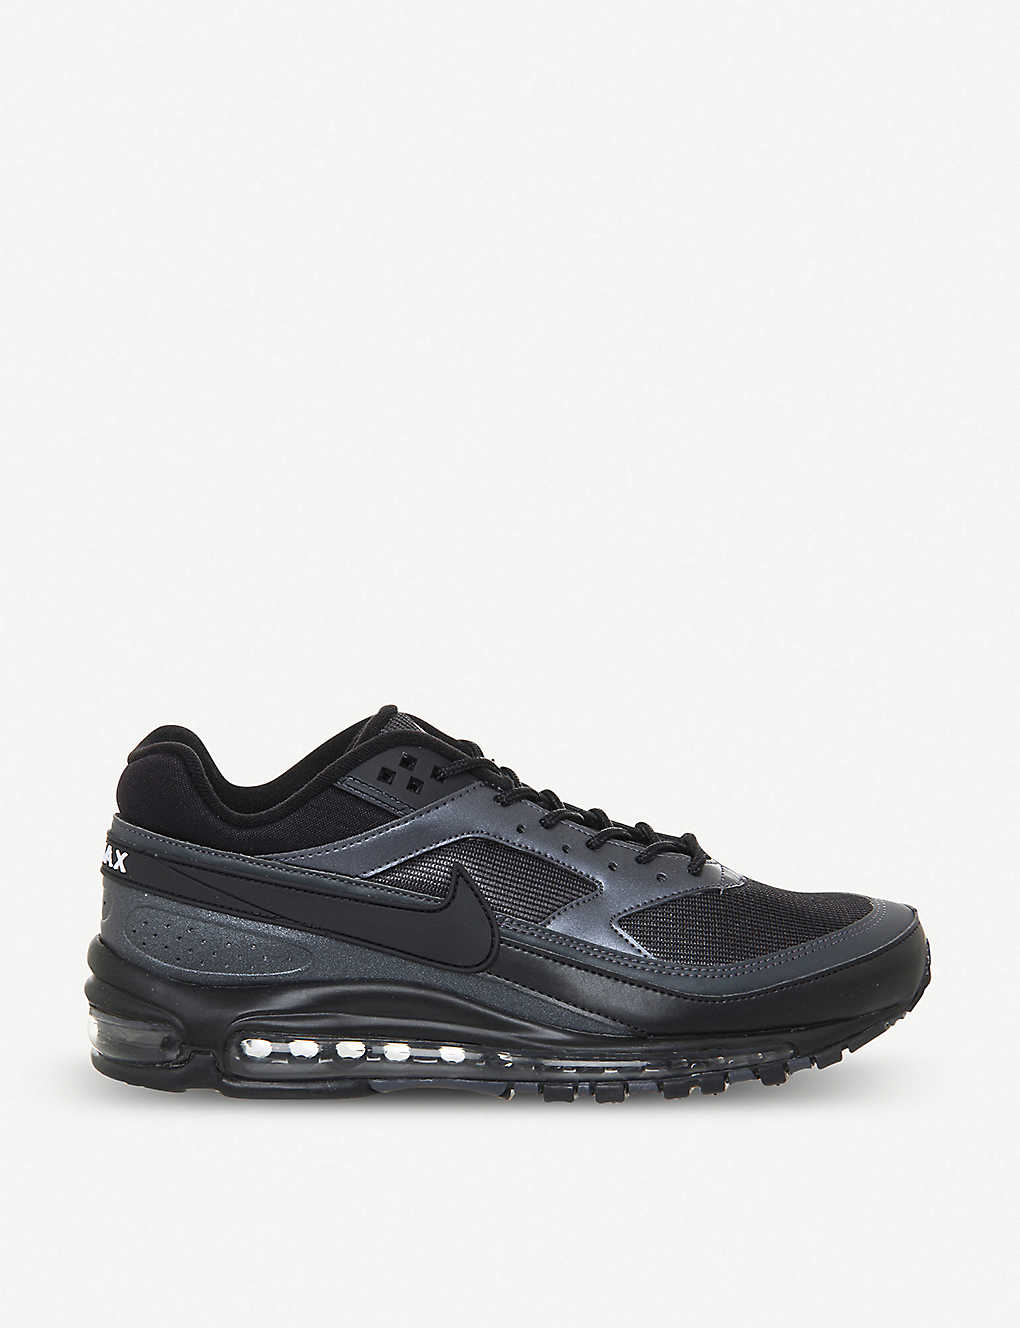 free shipping a8062 d9c23 Air Max 97 BW iridescent leather trainers - Black metallic ...